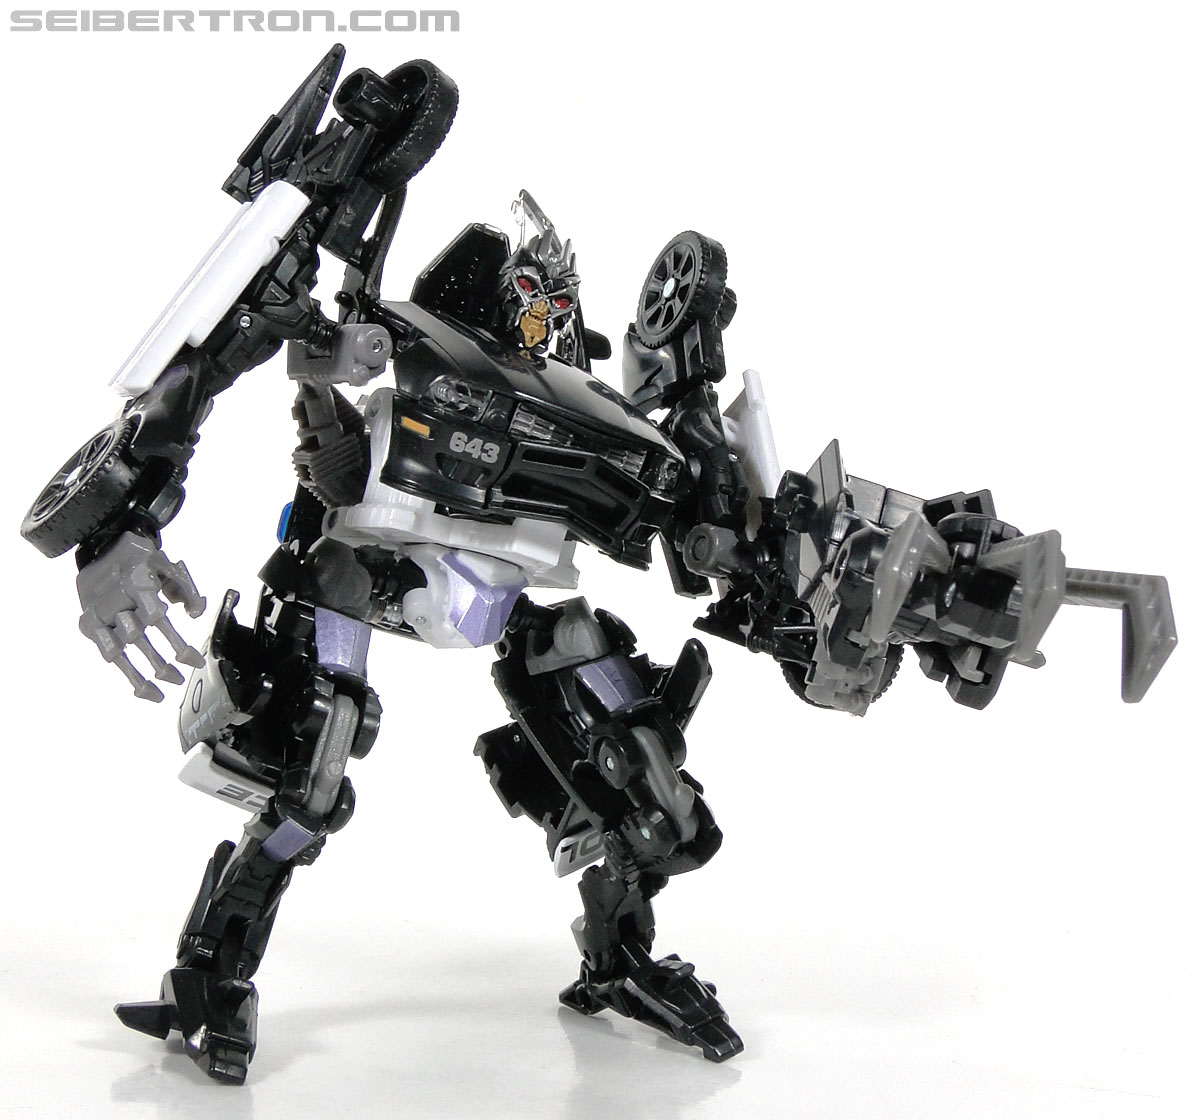 Transformers Dark of the Moon Barricade (Image #117 of 153)